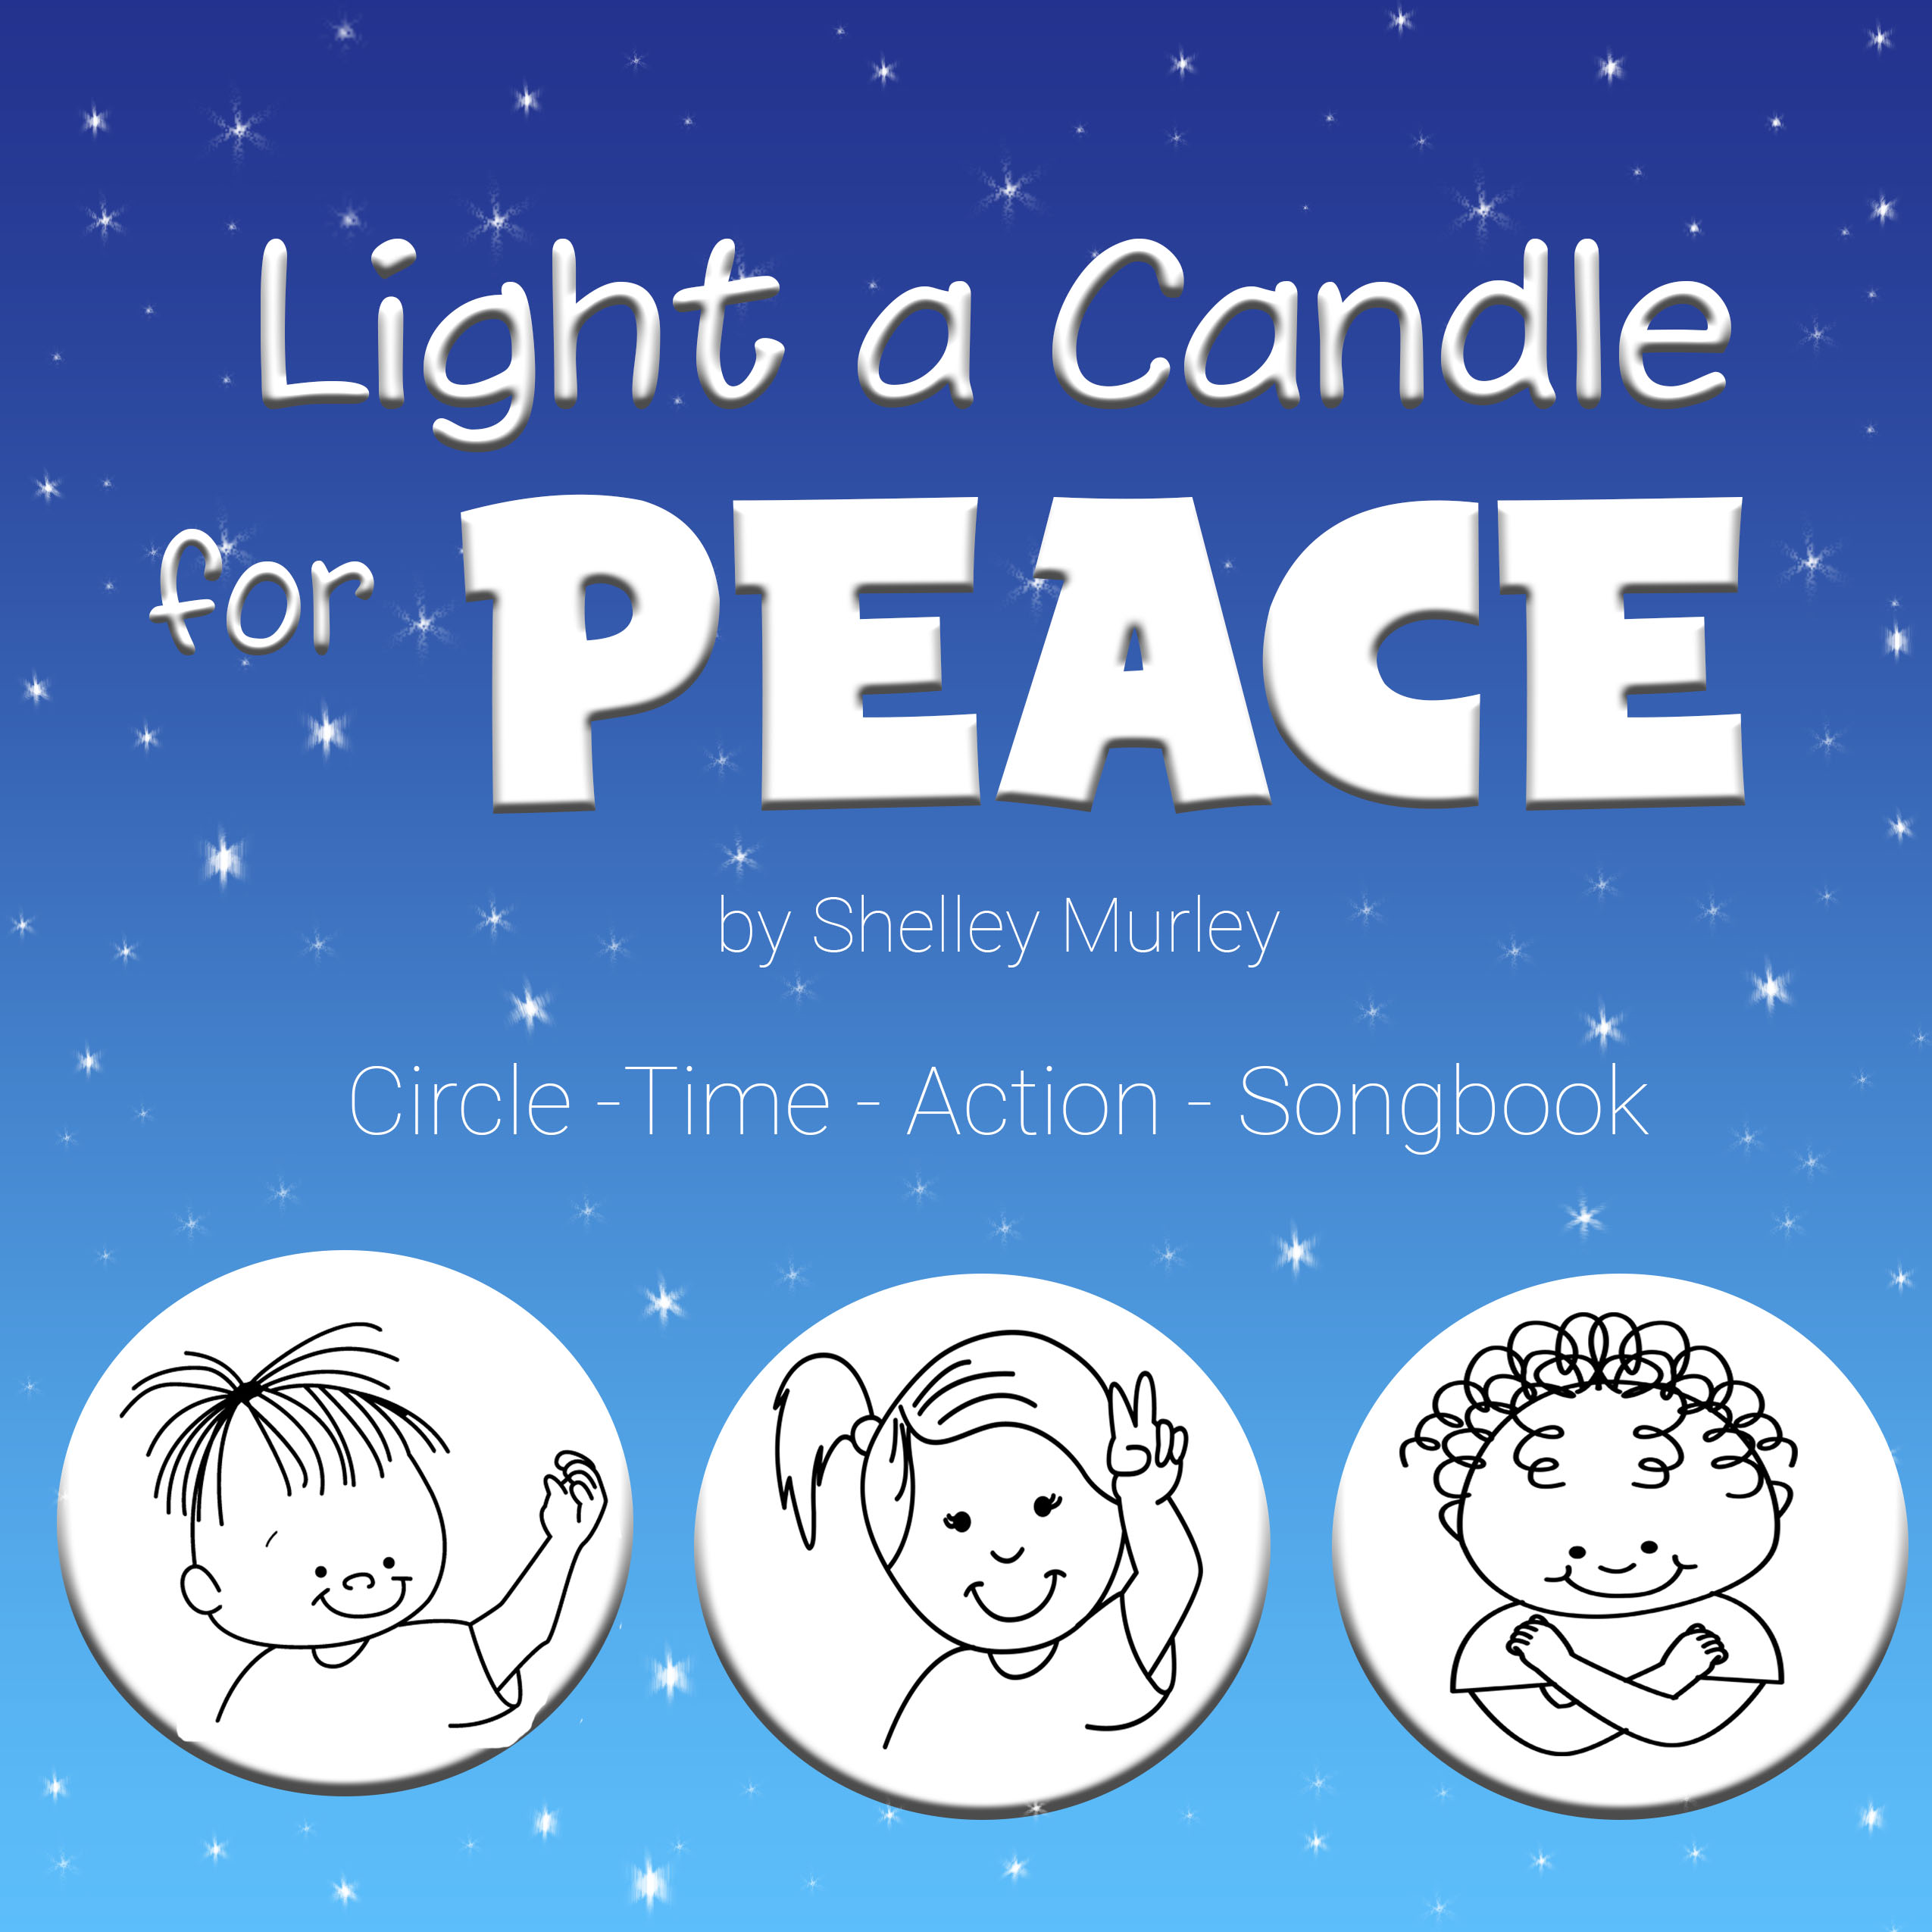 Candle for peace lyrics